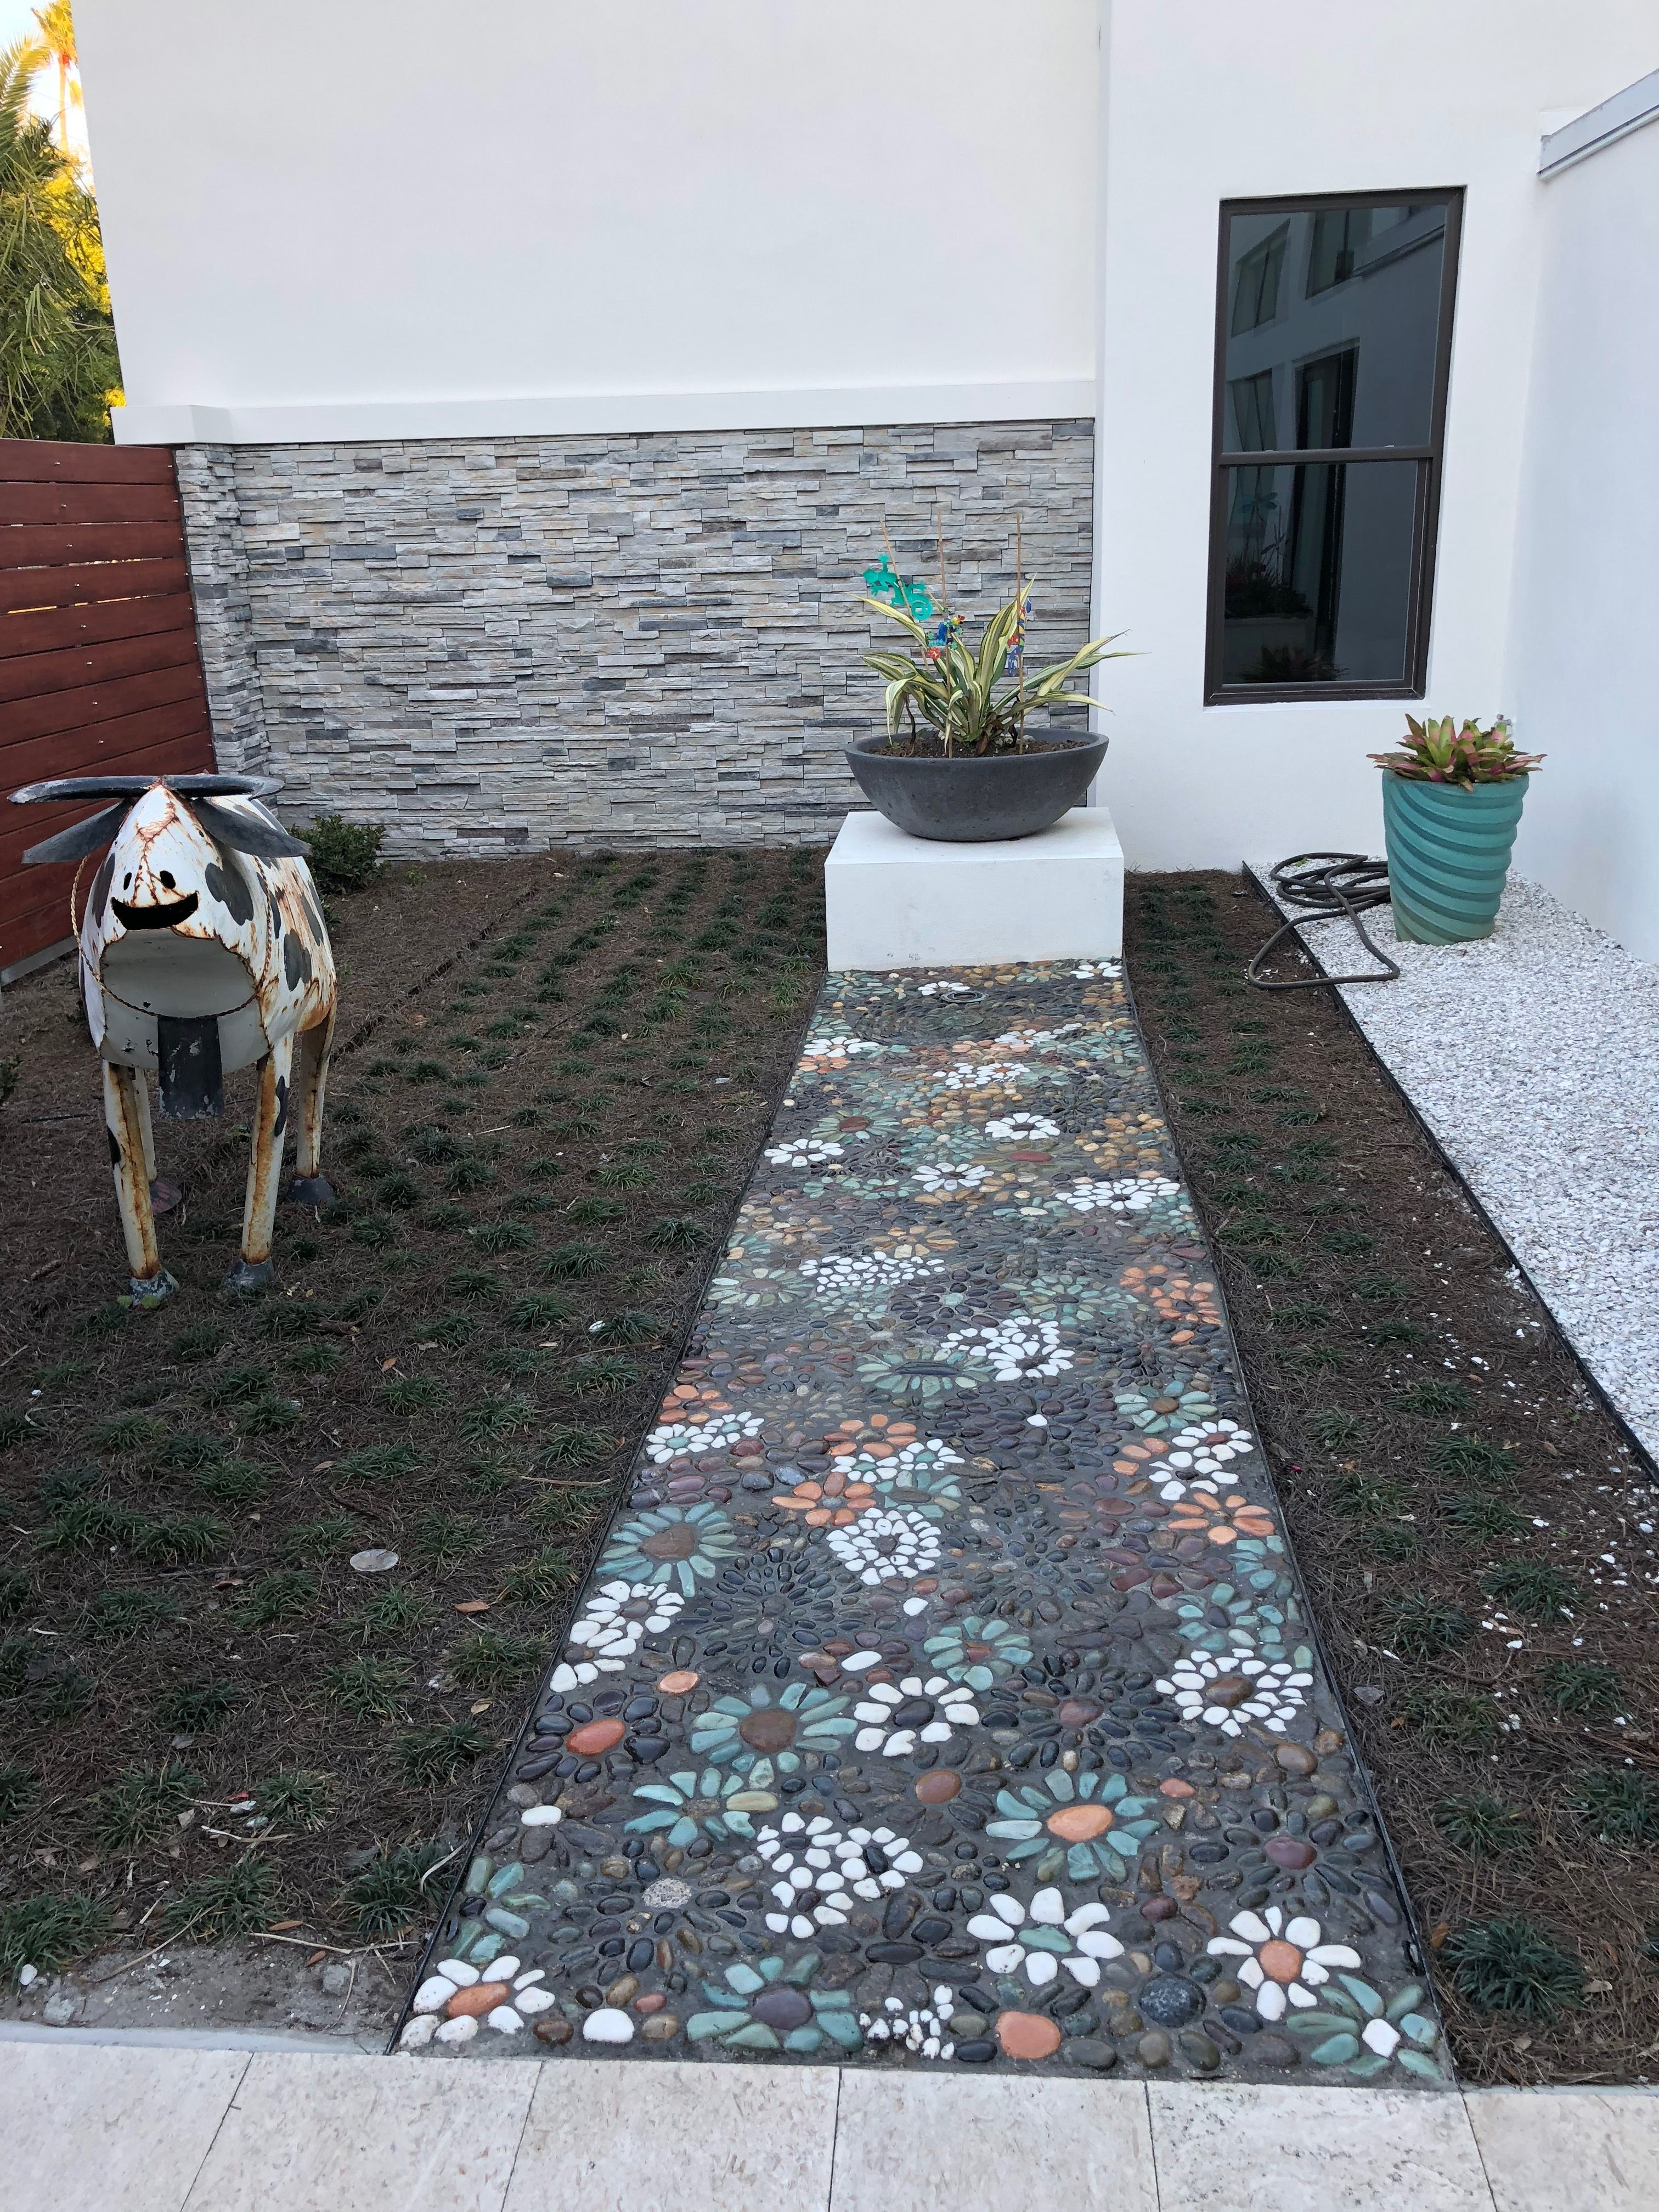 Just Finished Sealing The Pebble Stone Mosaic Walkway I Am Really Pleased With The Results Patio Stones Stone Backyard Outdoor Walkway